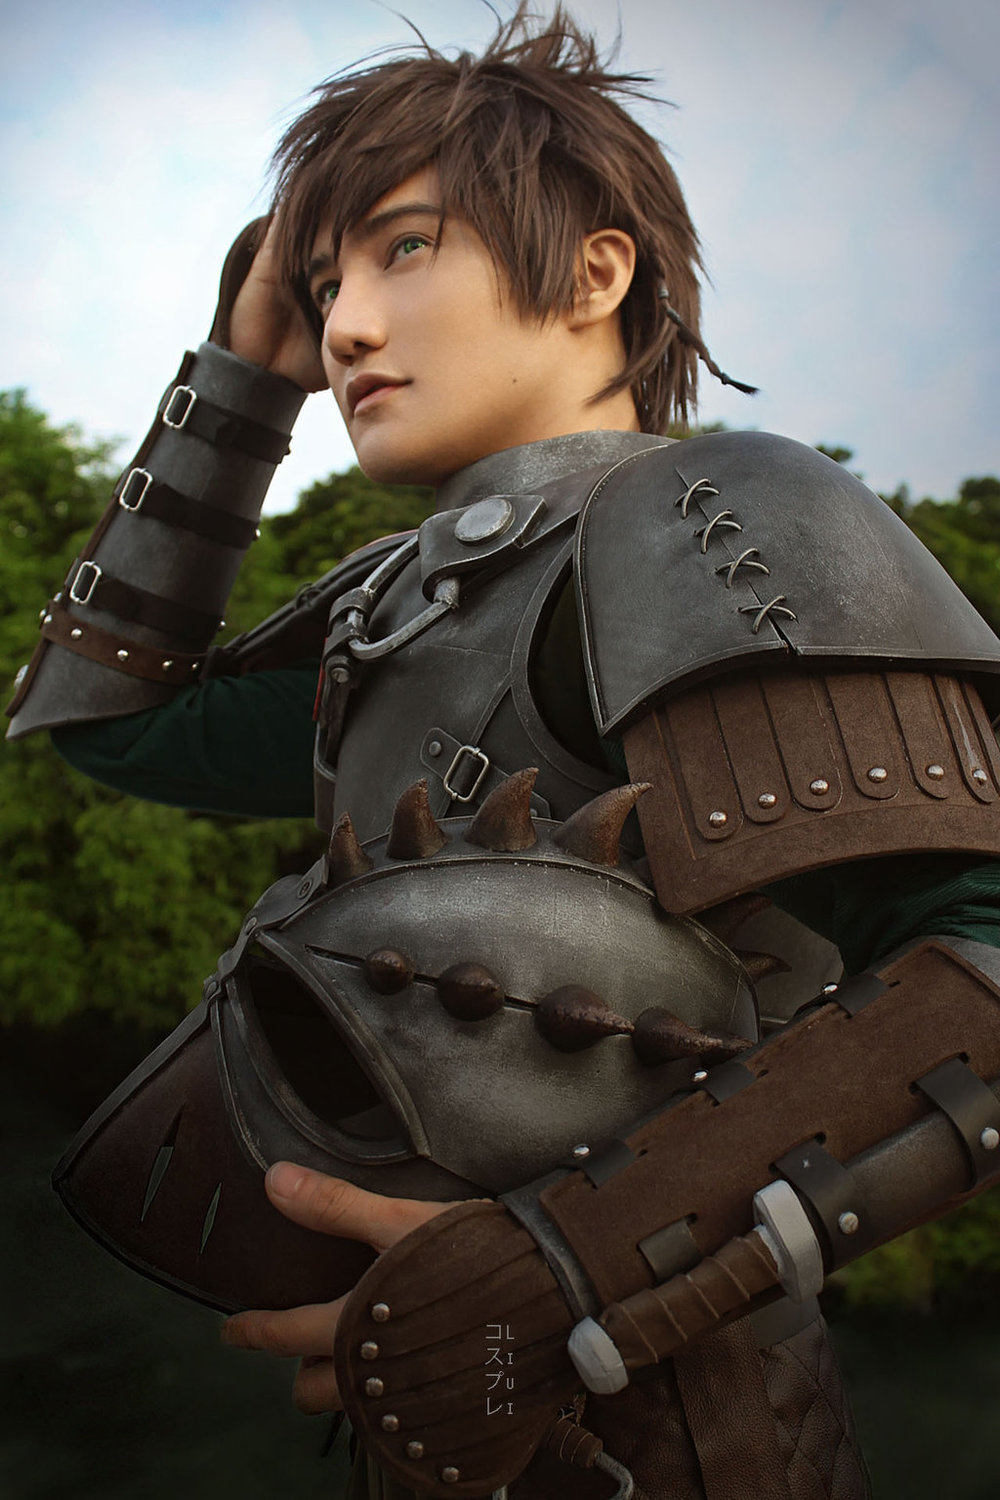 hiccup_cosplay_how_to_train_your_dragon_2_by_liui_aquino-d7nli9u.jpg